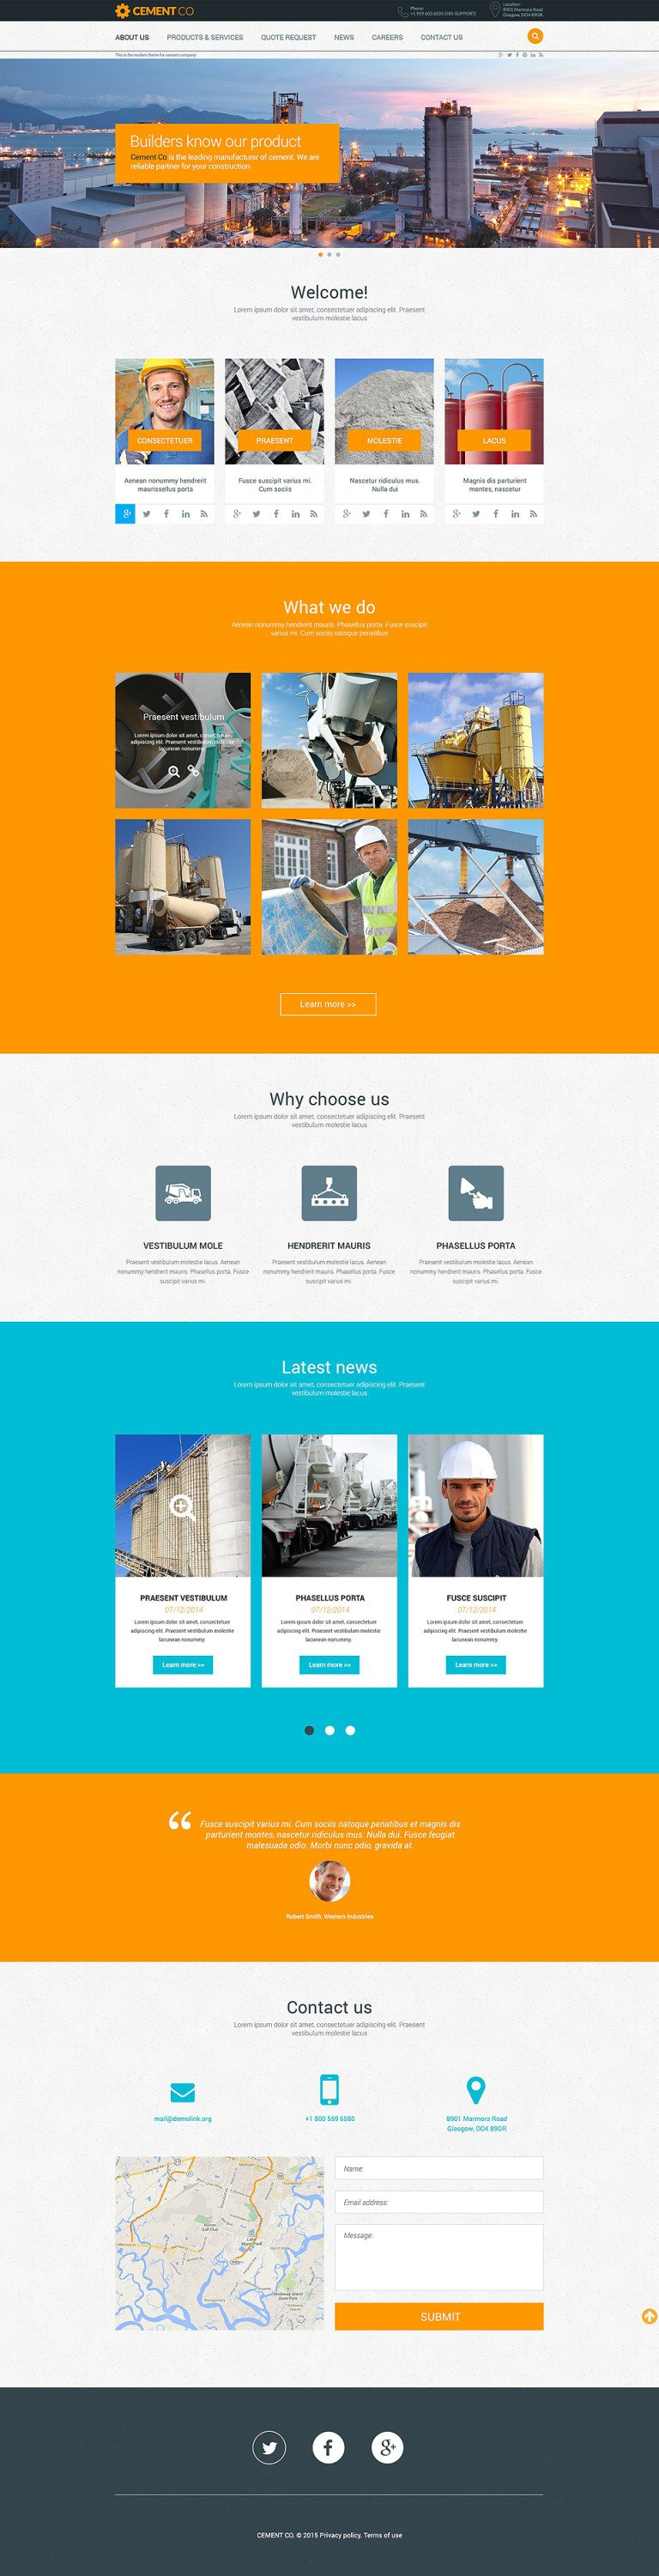 Cement Company Website Template New Screenshots BIG